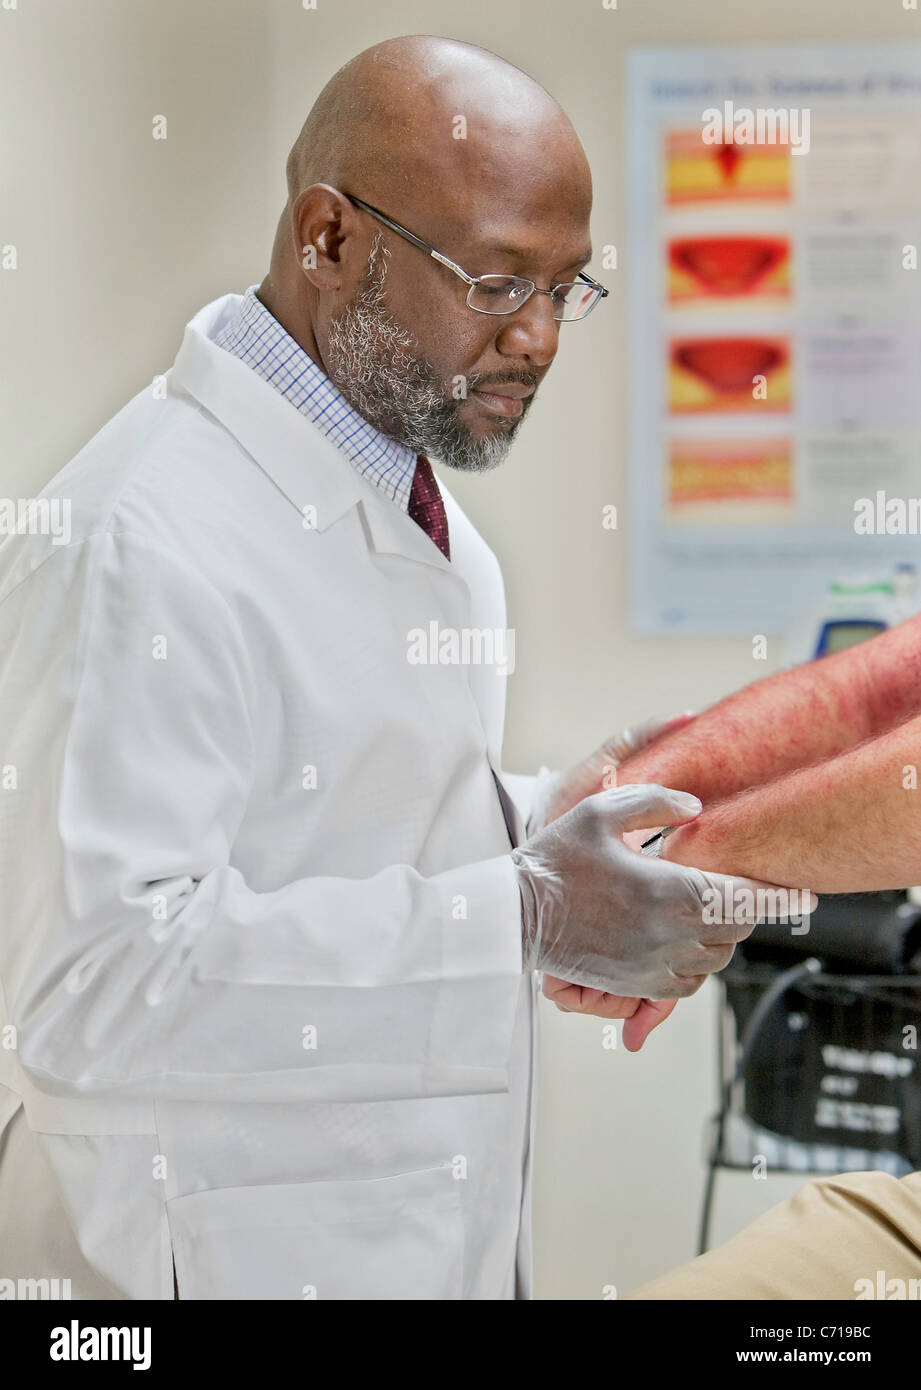 A doctor checks a rash on a patient's arm. - Stock Image